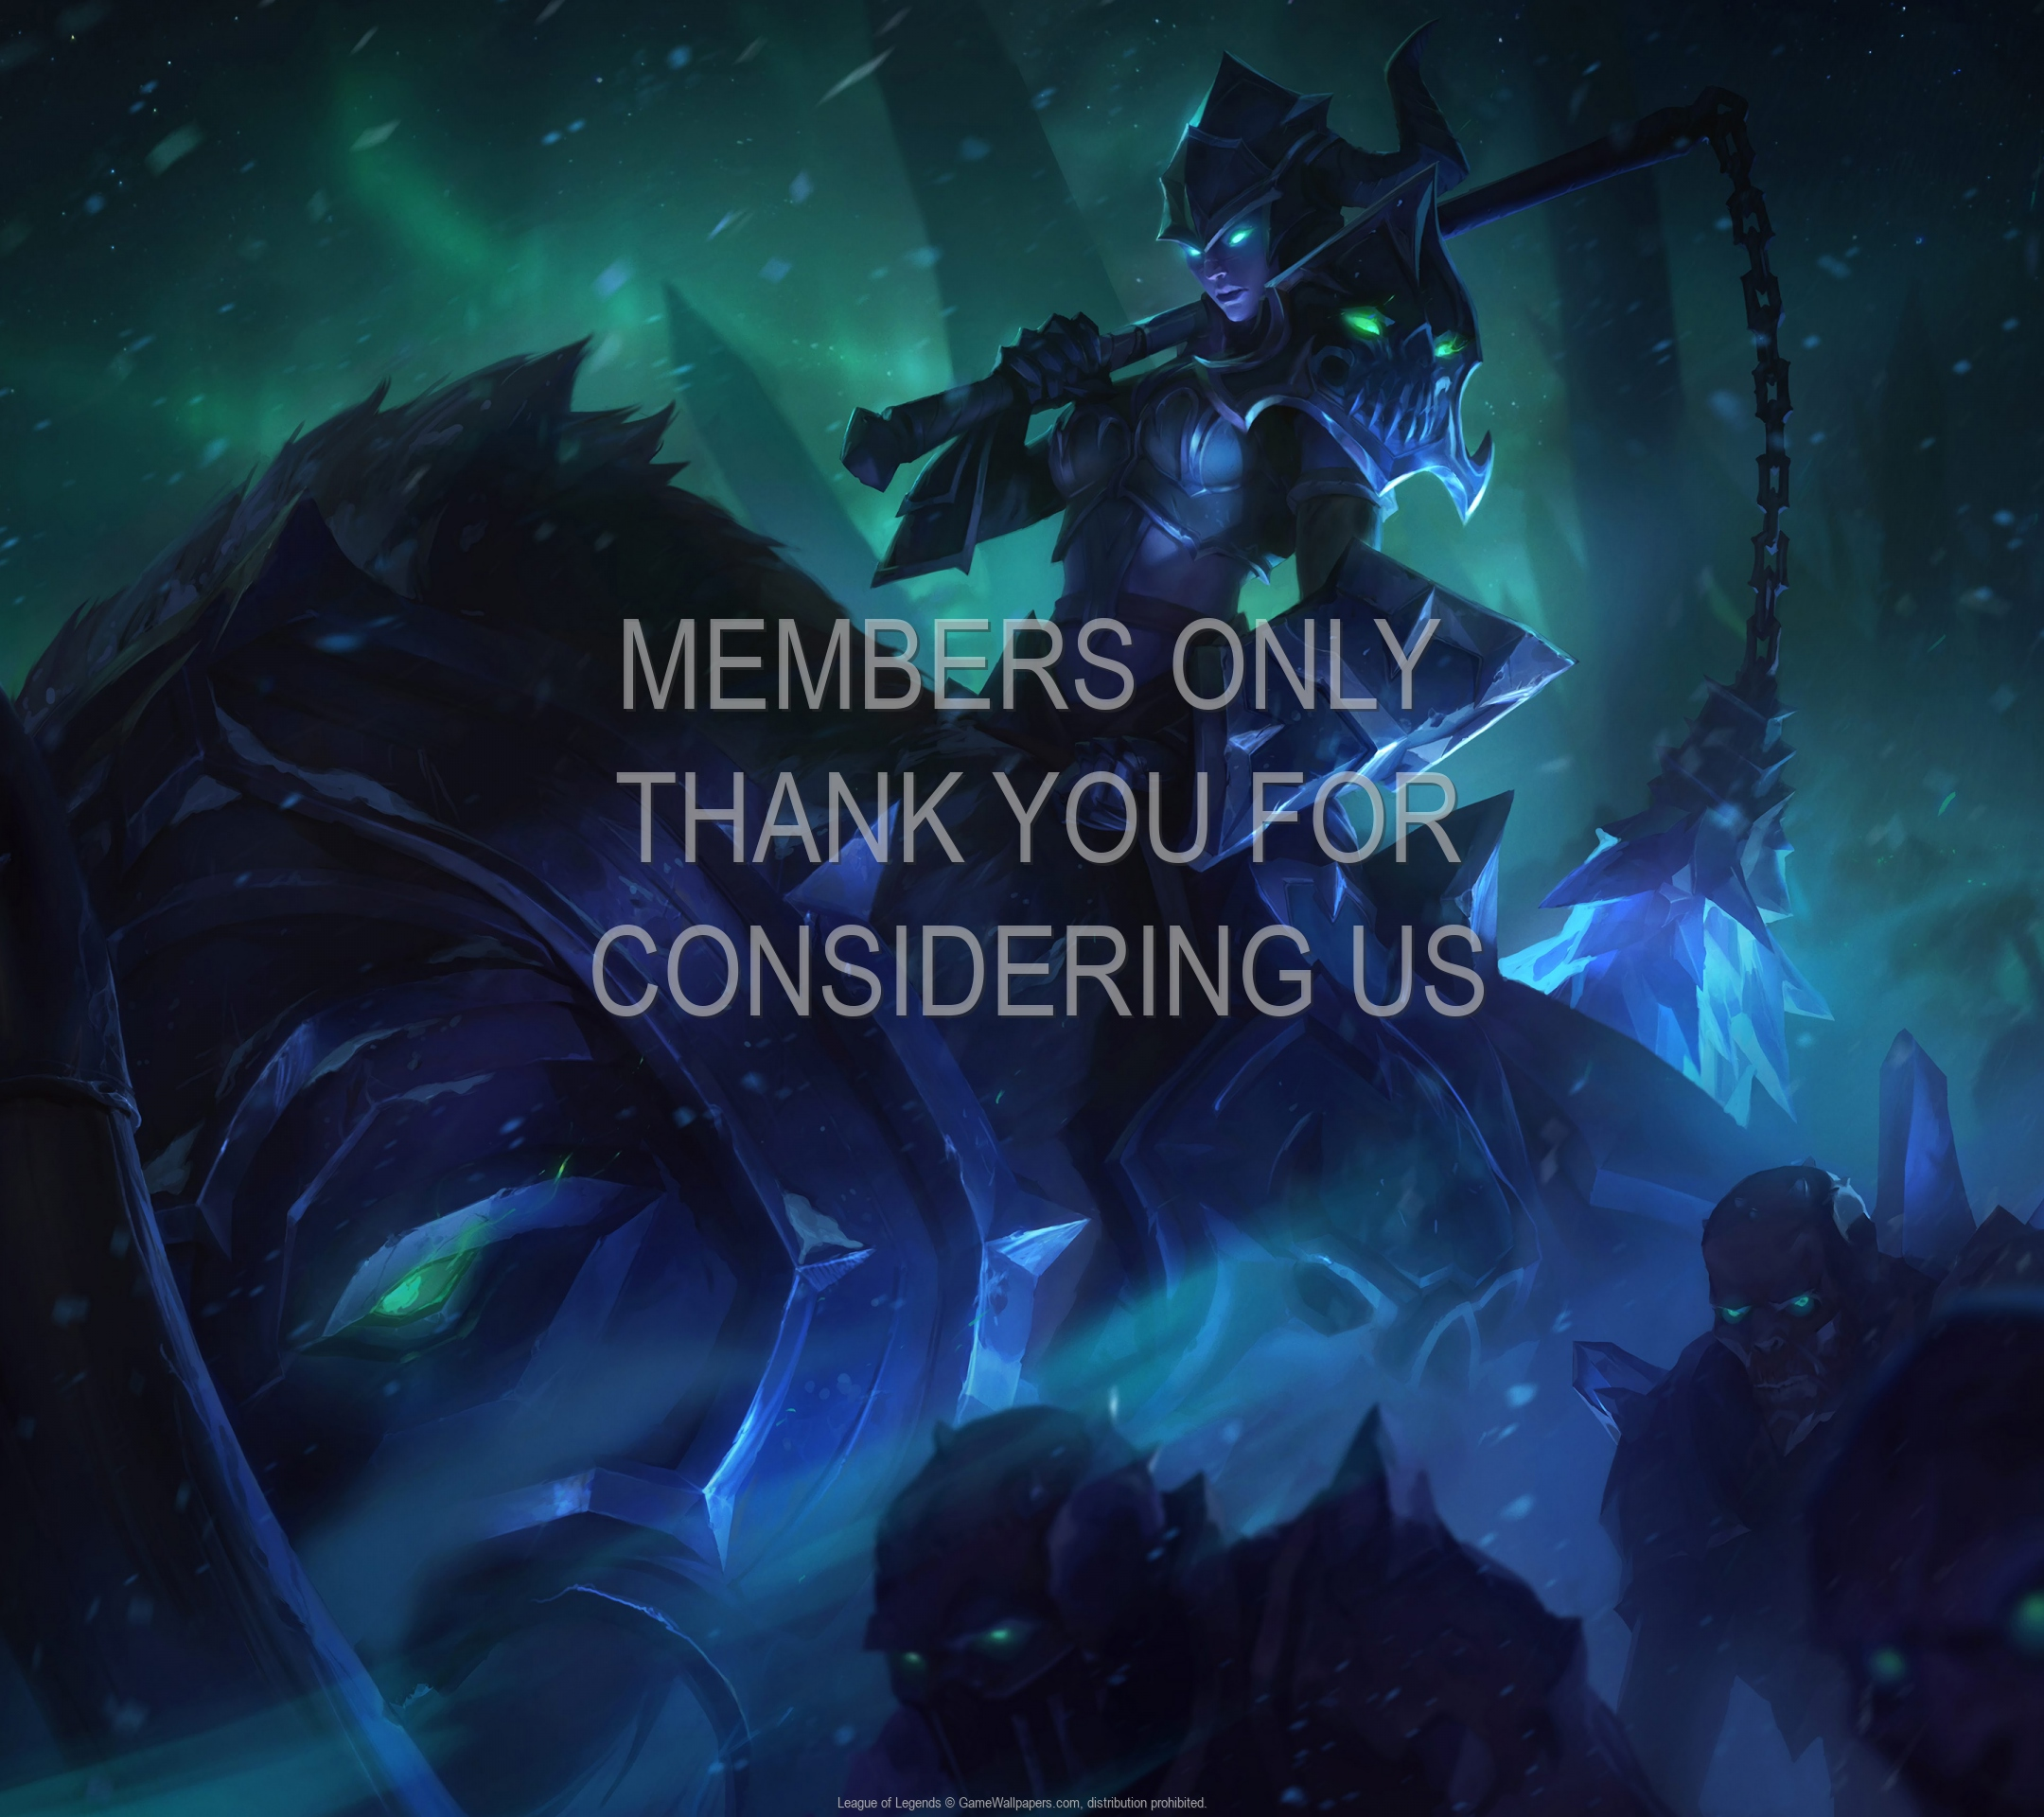 League of Legends 1920x1080 Mobile wallpaper or background 92